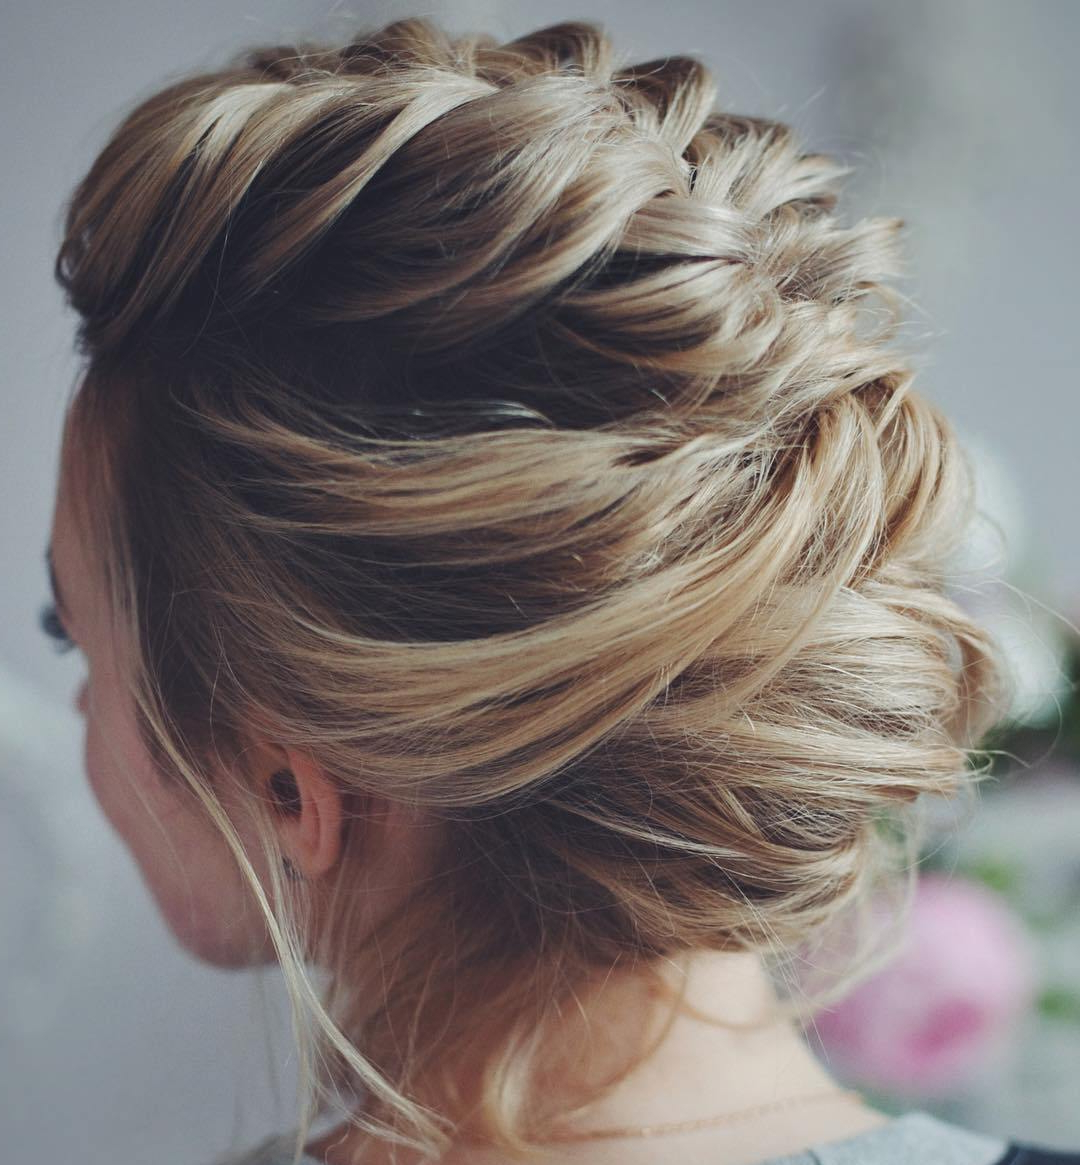 50 Hottest Prom Hairstyles For Short Hair Throughout Favorite Complex Looking Prom Updos With Variety Of Textures (Gallery 7 of 20)